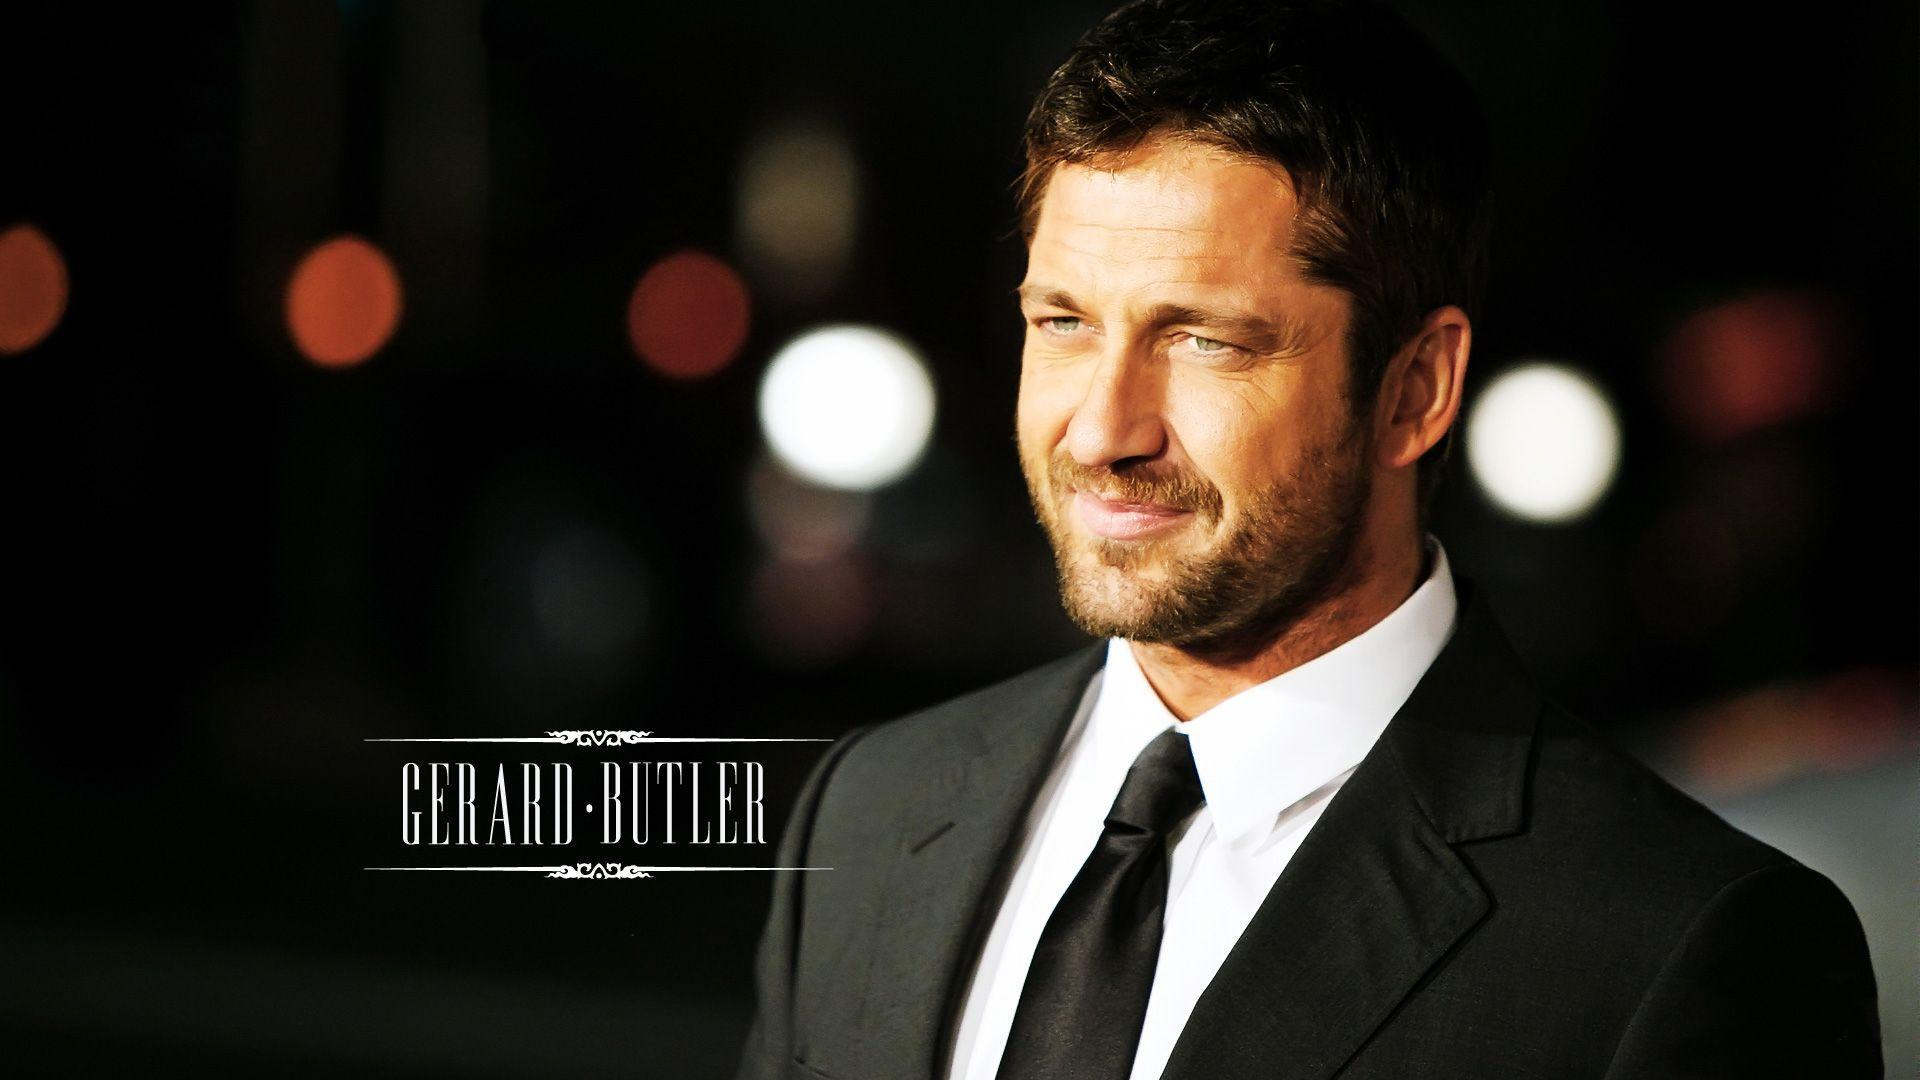 Gerard Butler Hollywood HD Wallpapers | HD Wallpapers